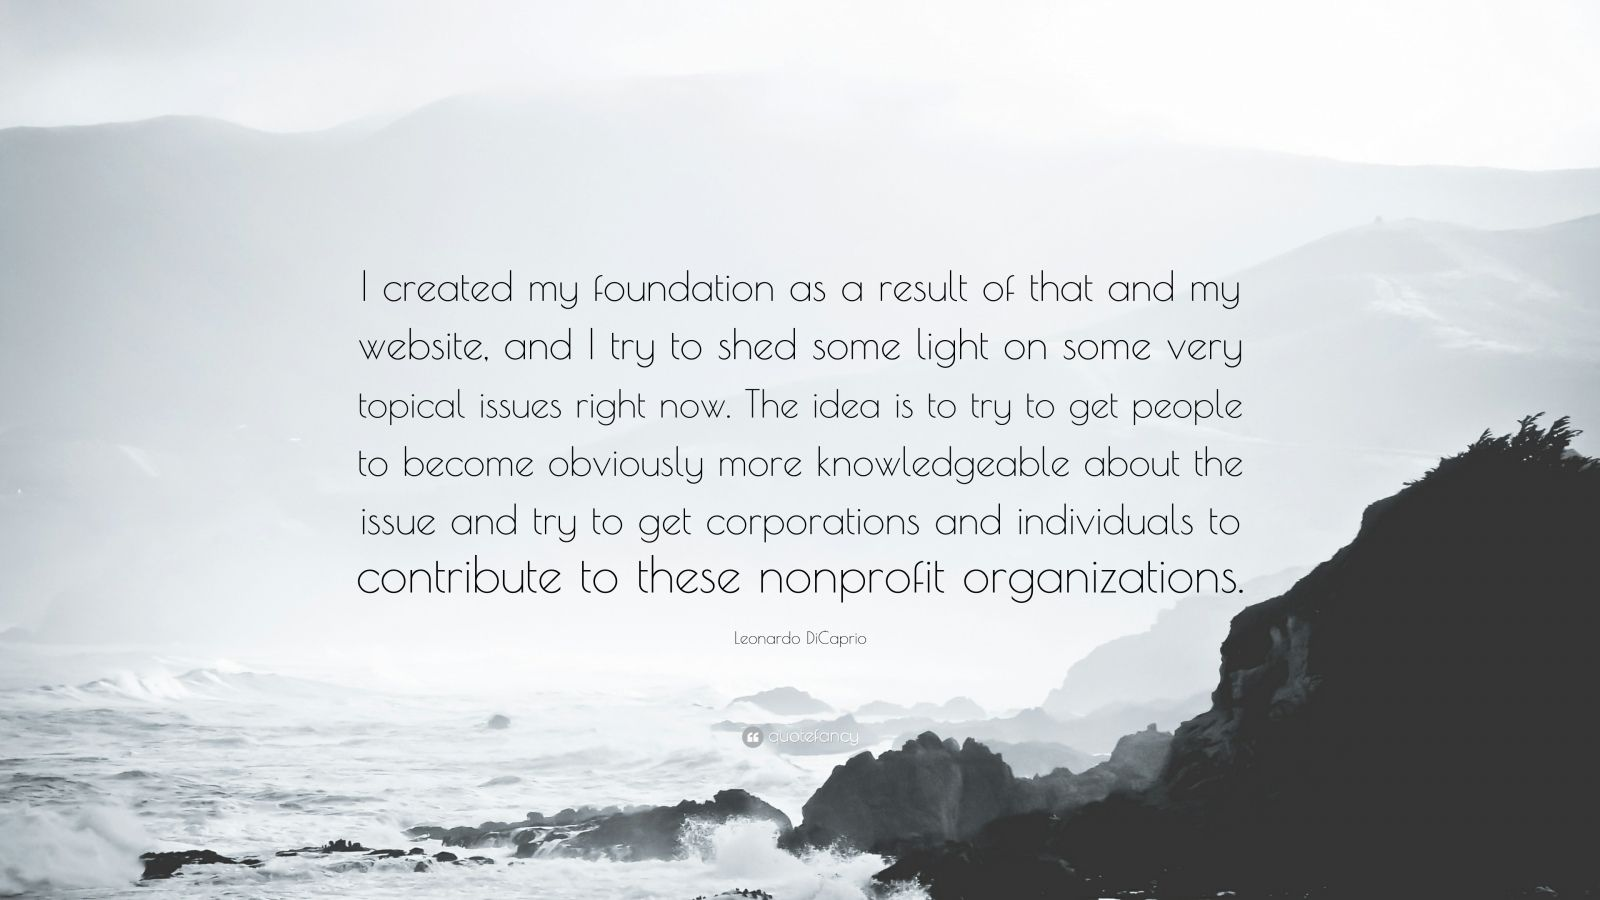 "Leonardo DiCaprio Quote: ""I created my foundation as a result of that and my website, and I try to shed some light on some very topical issues right now. The idea is to try to get people to become obviously more knowledgeable about the issue and try to get corporations and individuals to contribute to these nonprofit organizations."""